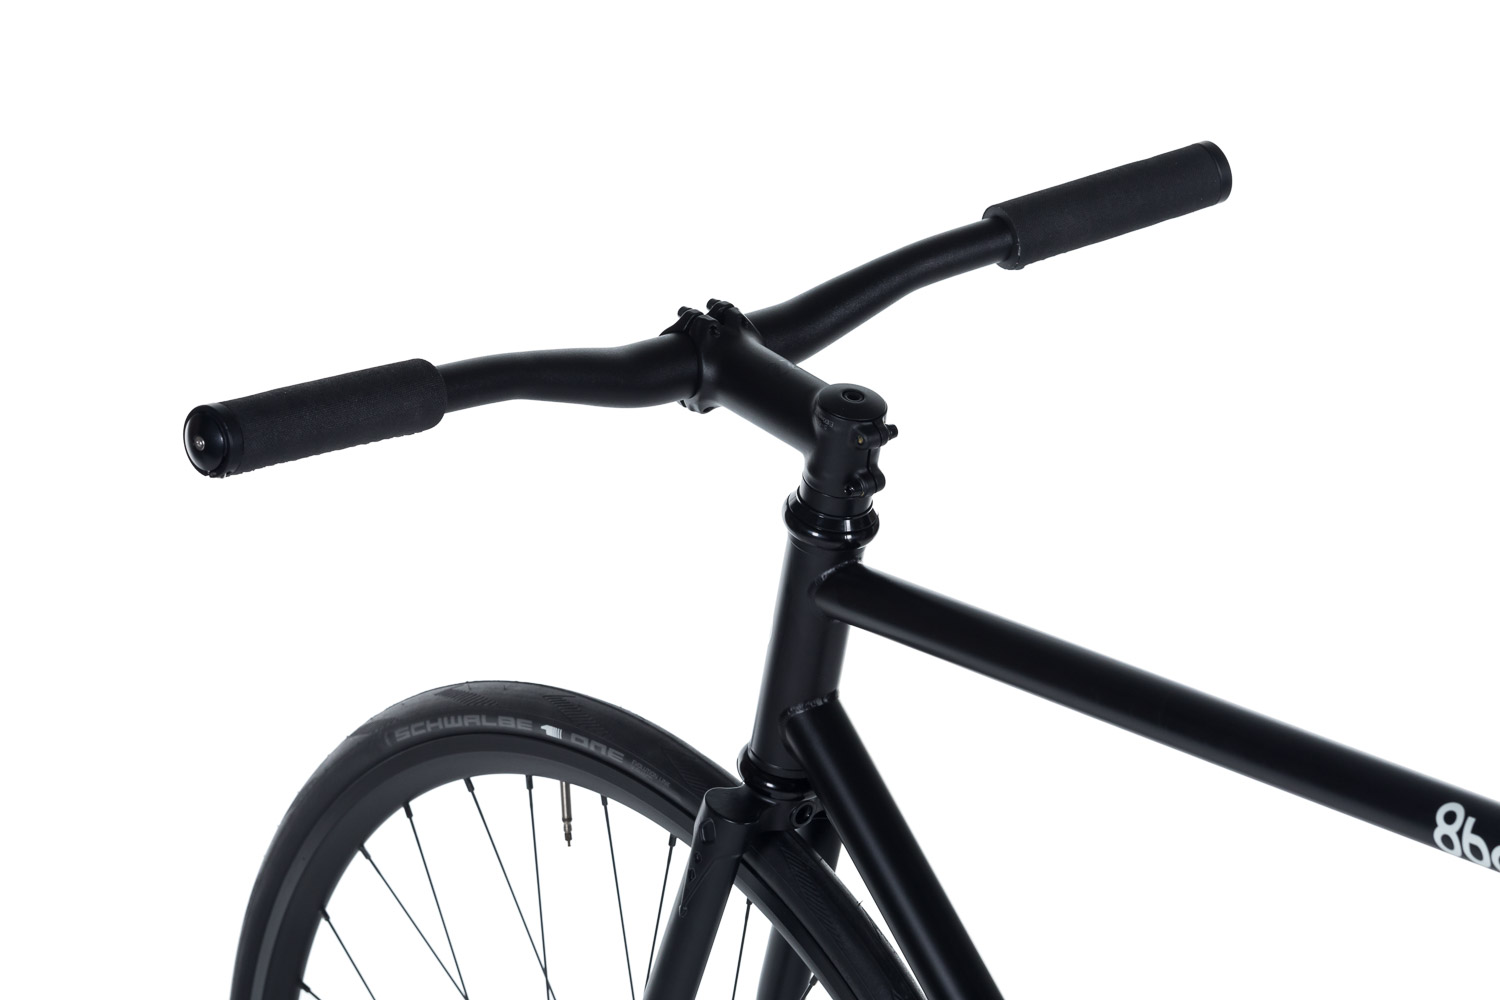 8bar-complete-bike-fhain-steel-pro-urban-riser-black-studio-fixed-gear-fixie-lr-3